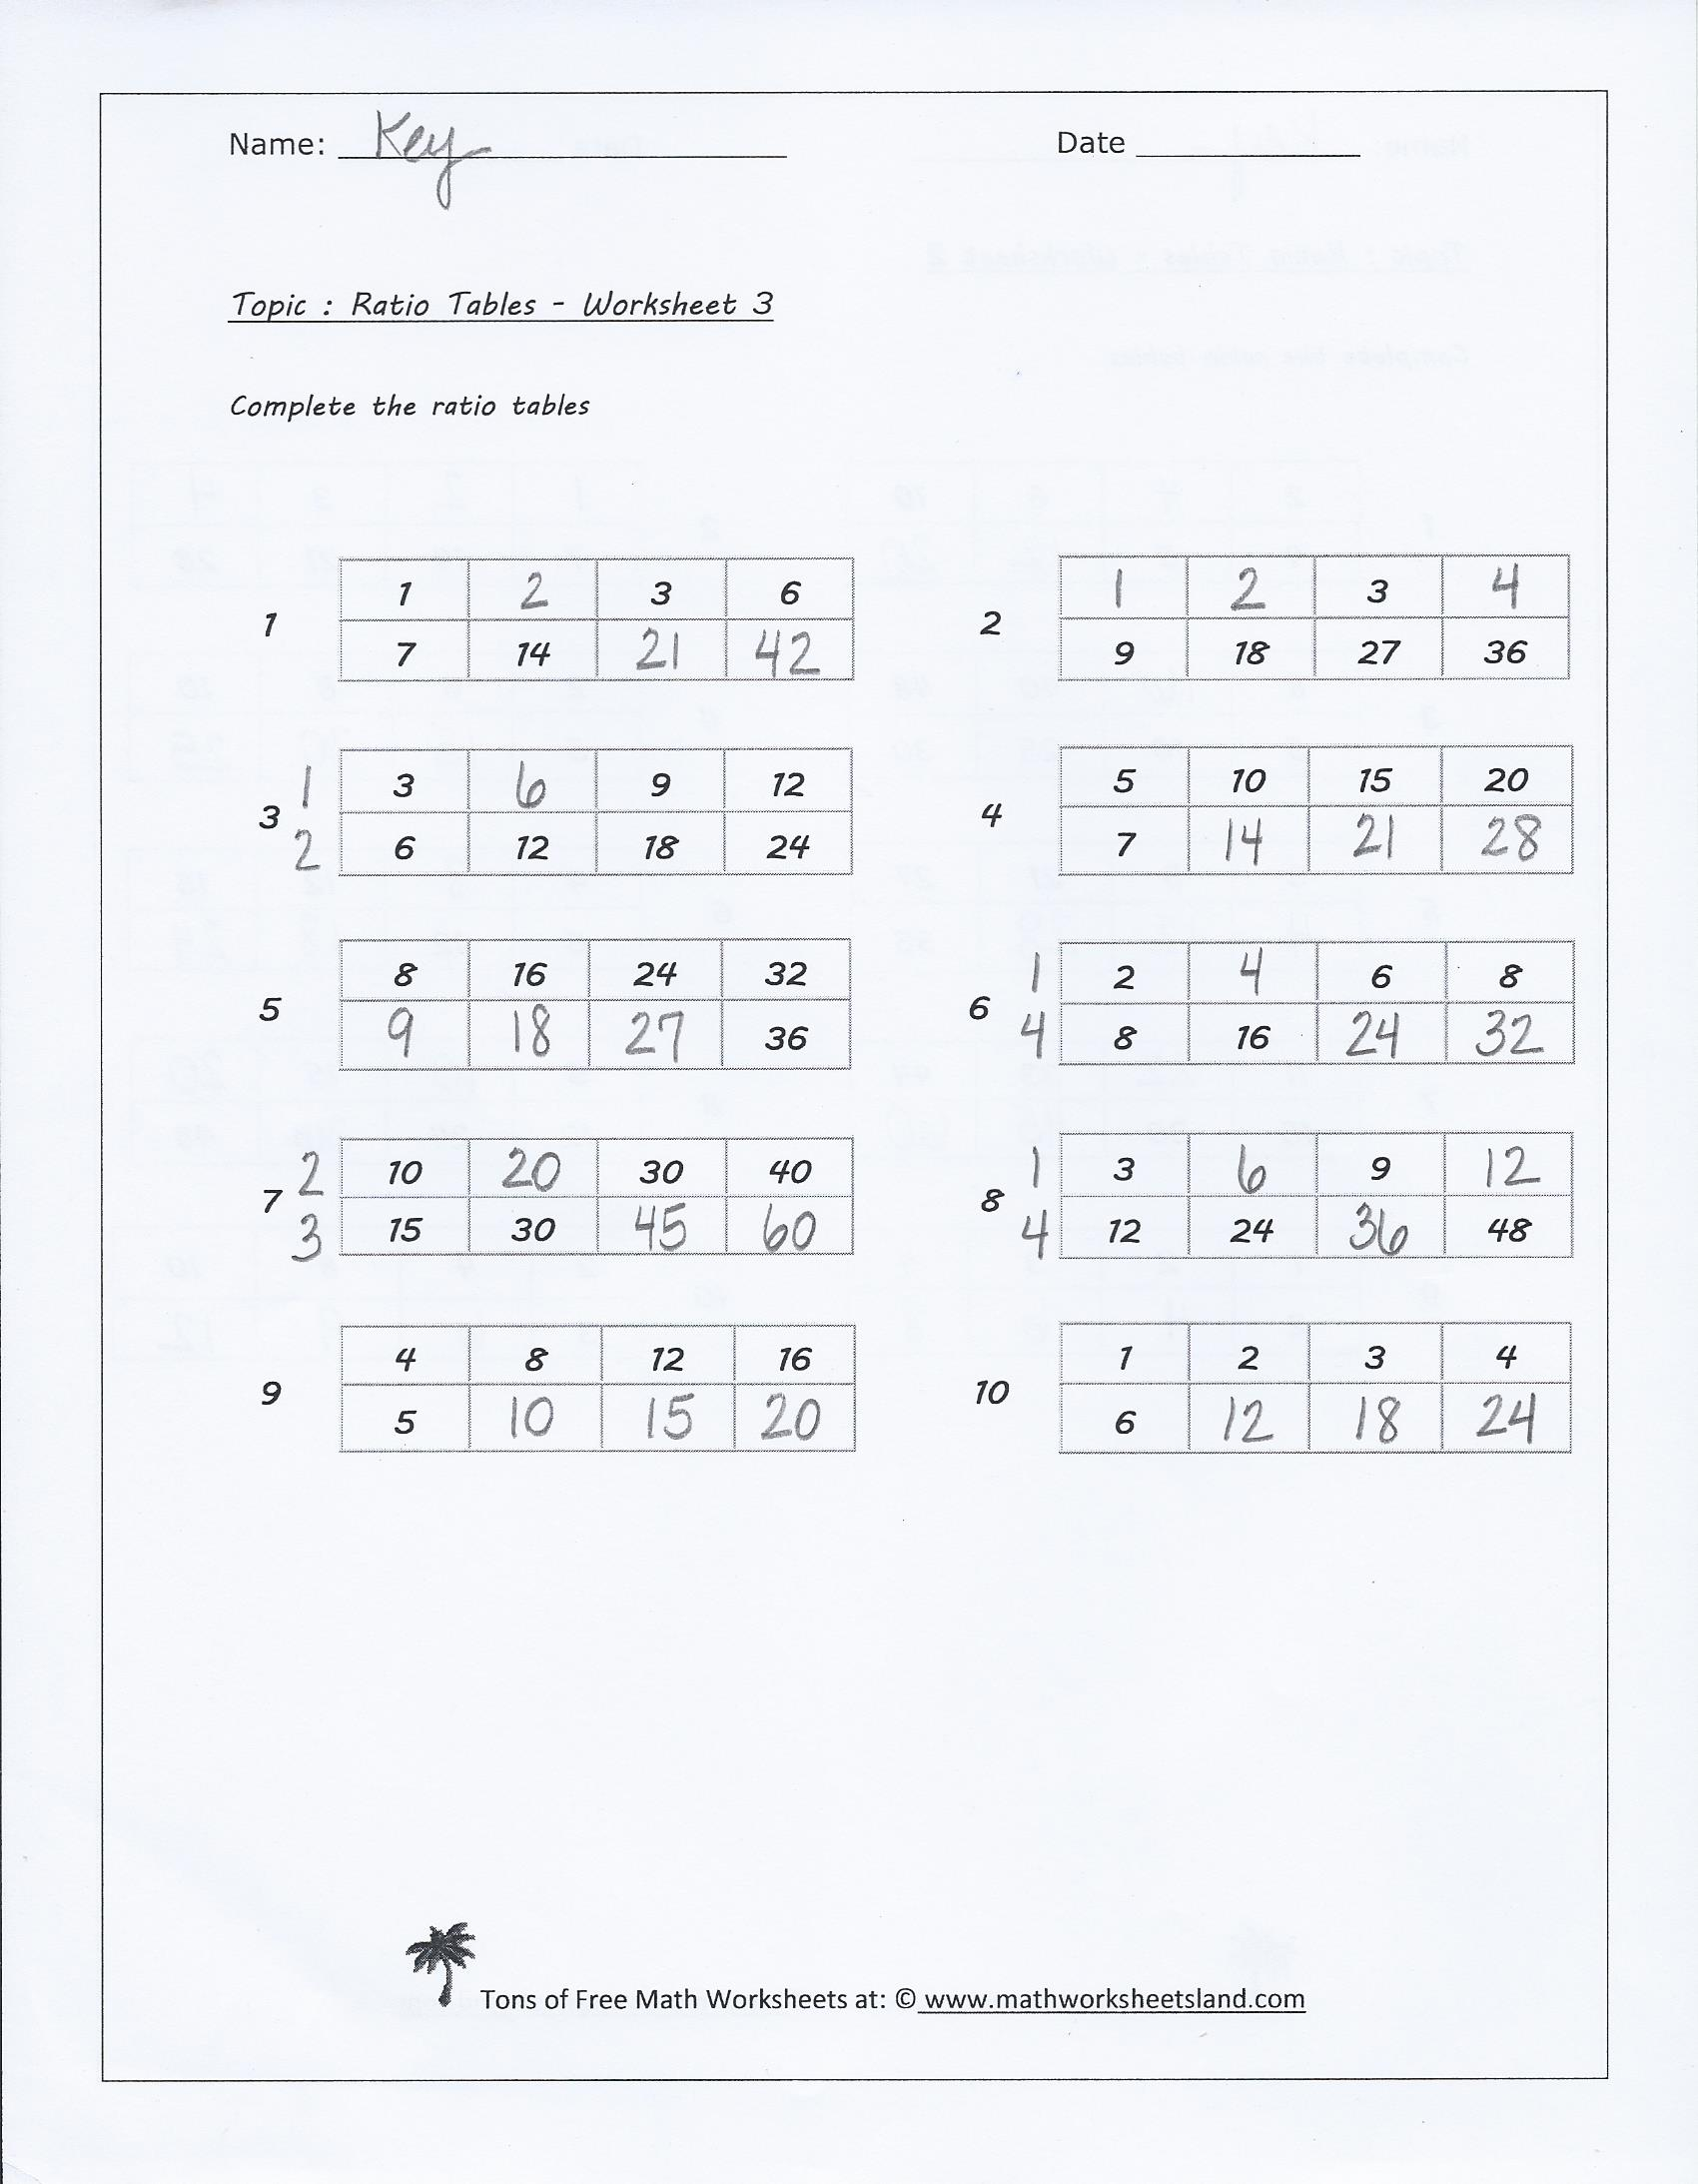 Printables Ratio Table Worksheets Messygracebook Thousands Of Printable Activities